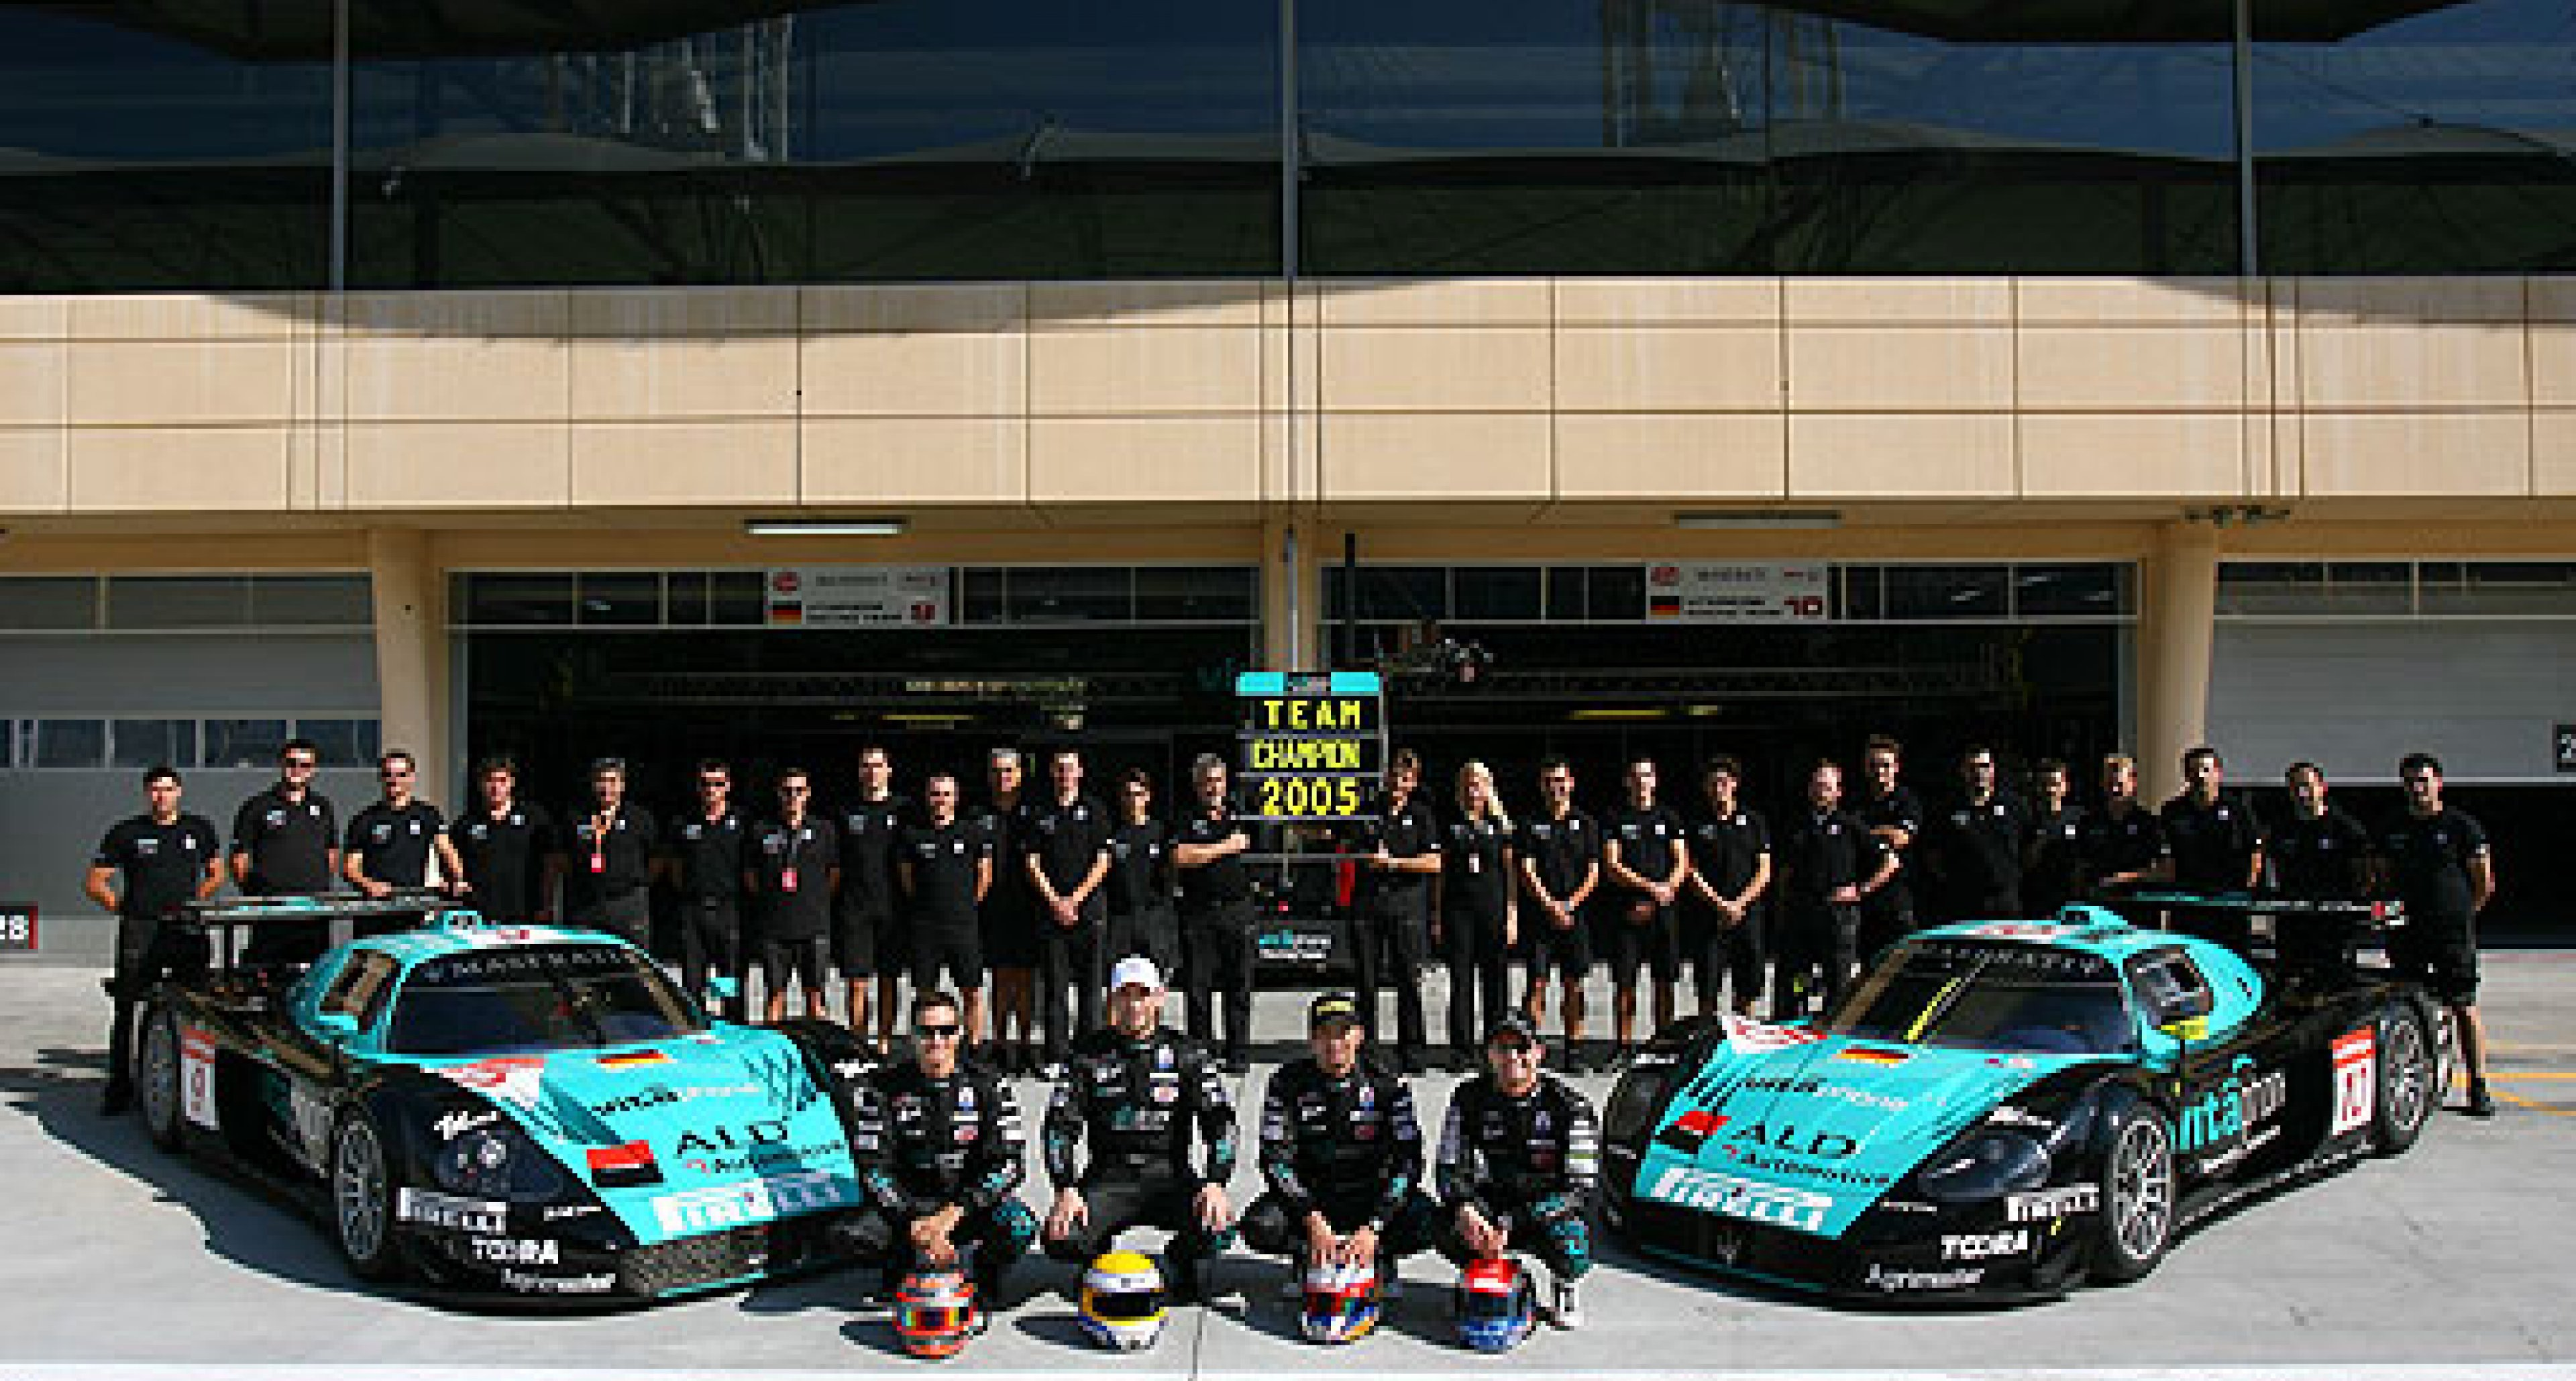 First privateer win for Aston Martin DBR9